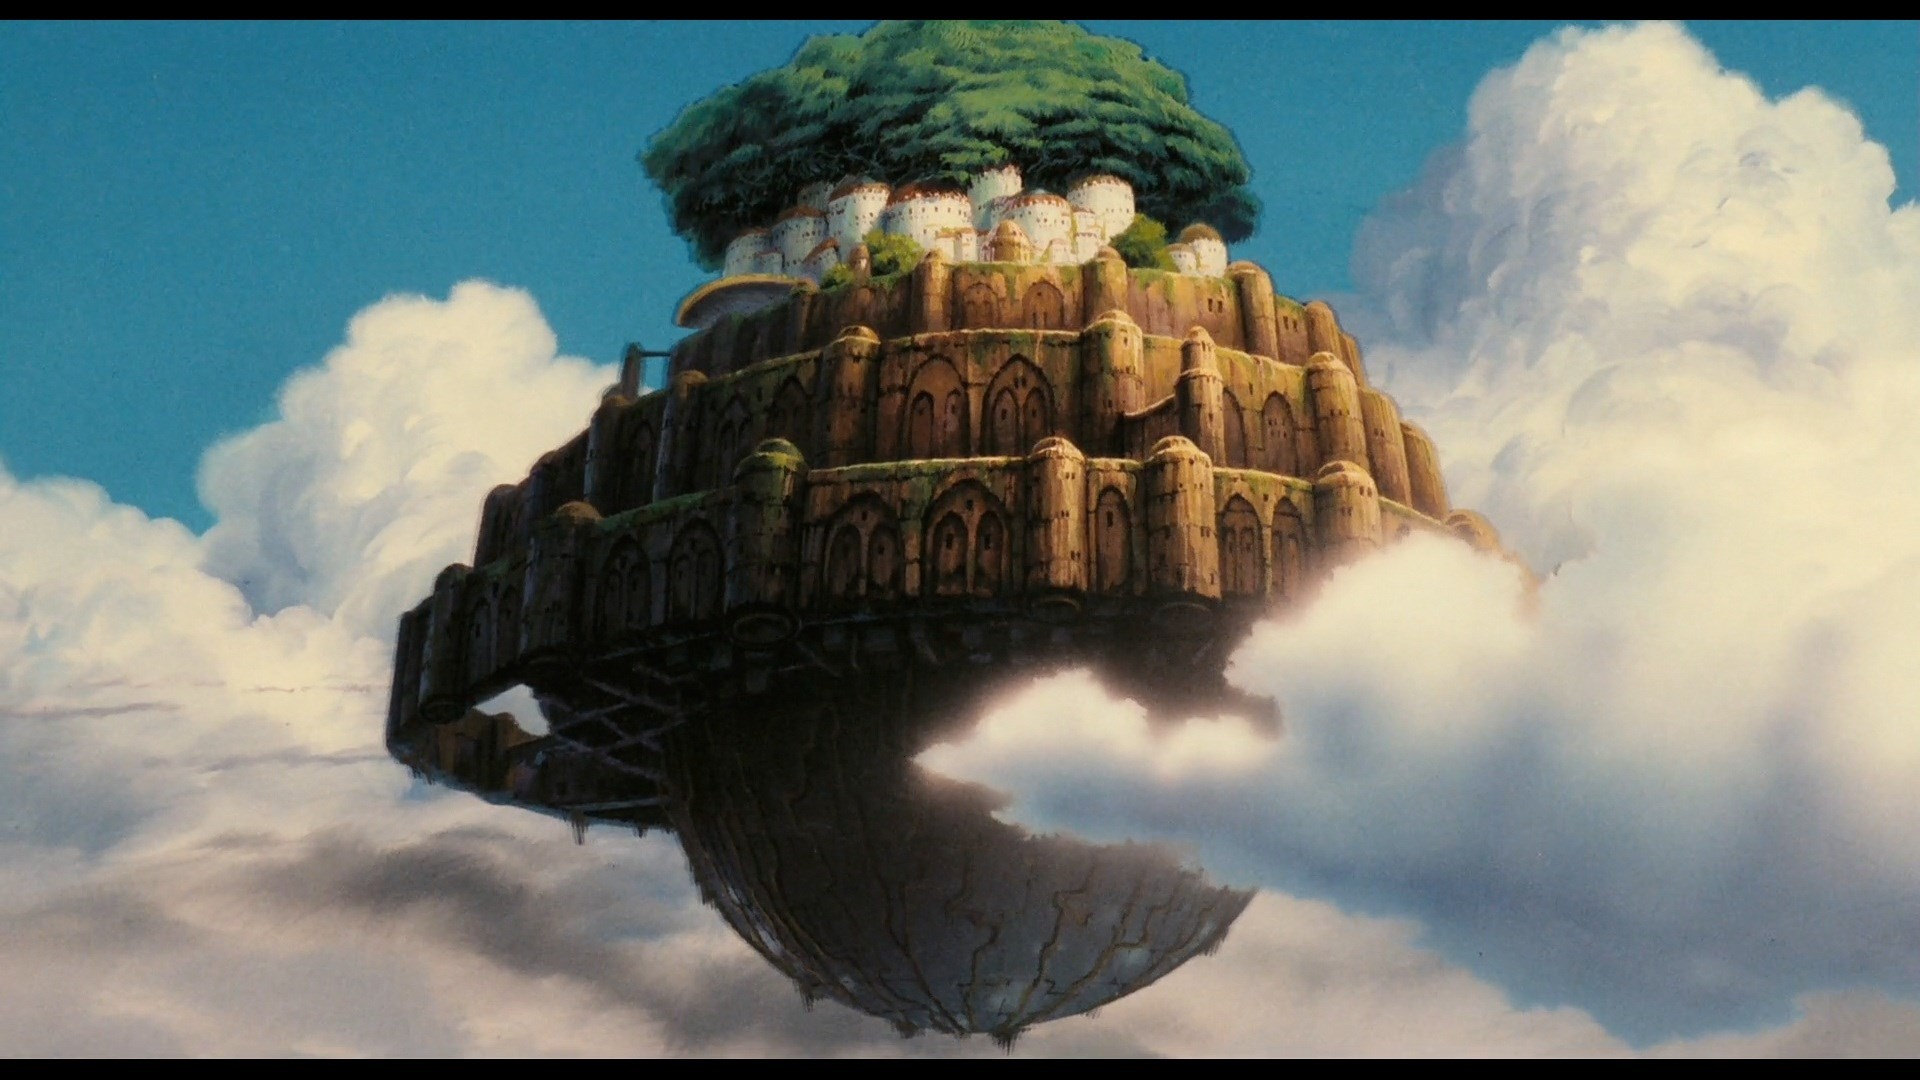 2017-03-07 – free wallpaper and screensavers for laputa castle in the sky